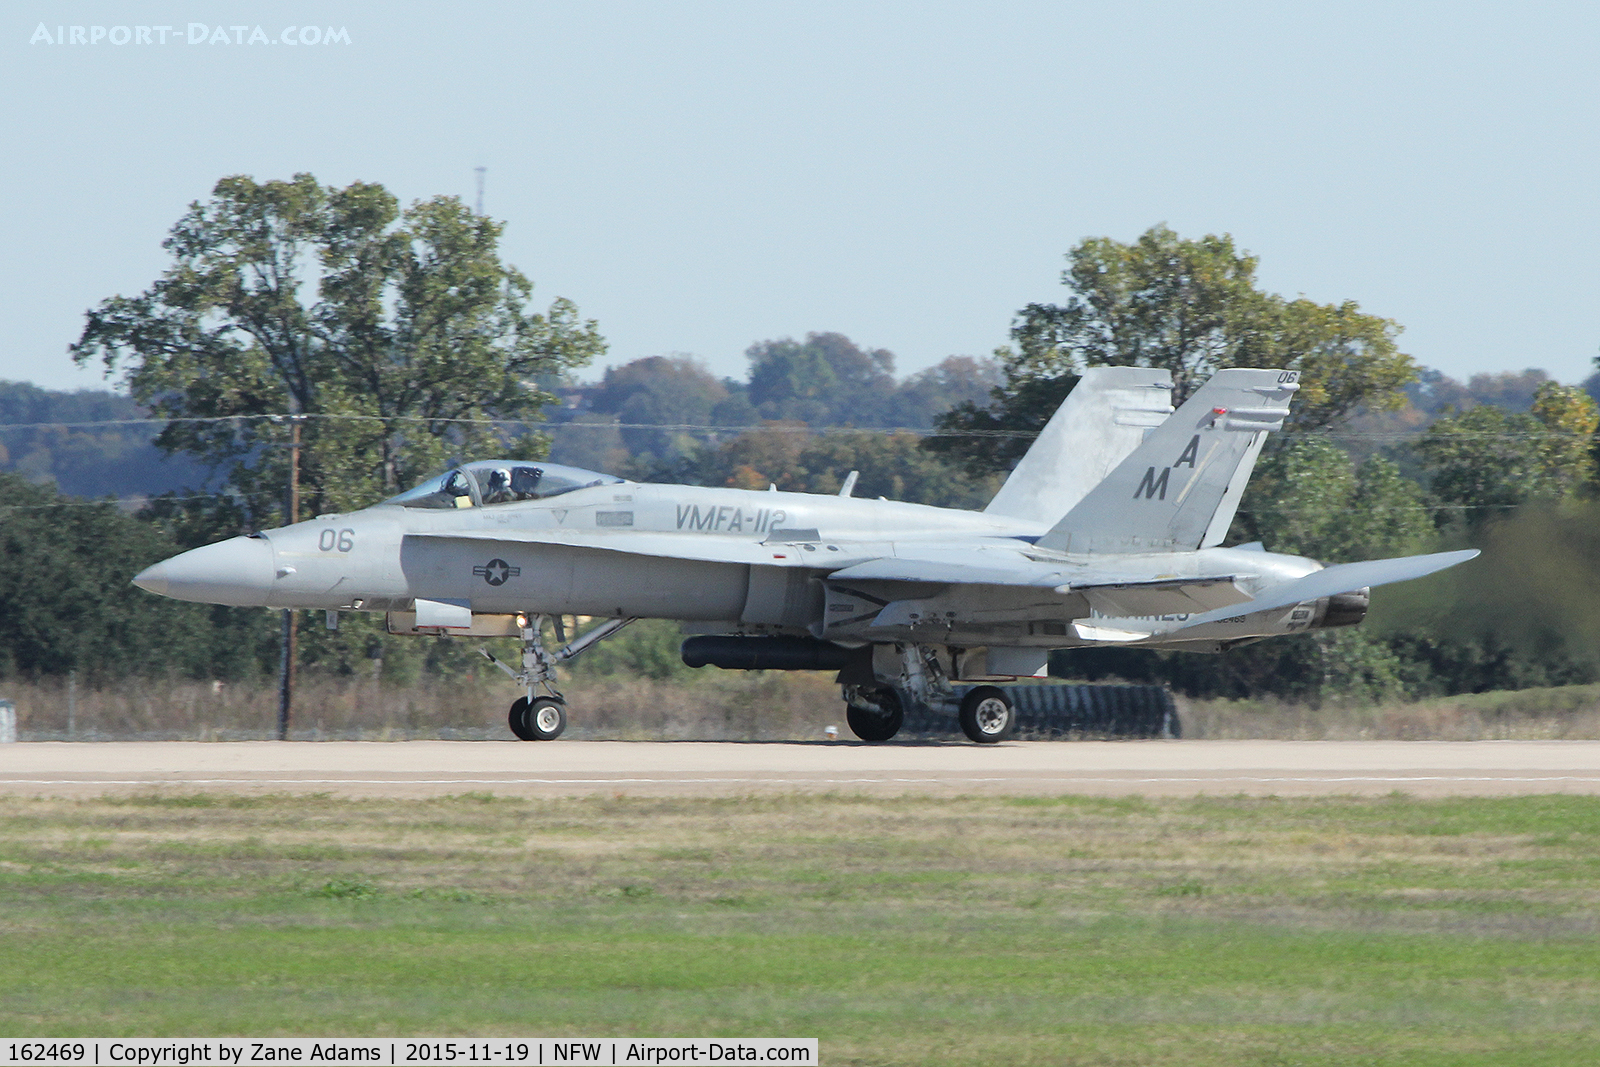 162469, McDonnell Douglas F/A-18A+ Hornet C/N 0325/A269, Airpower Expo 2016  - NAS Fort Worth